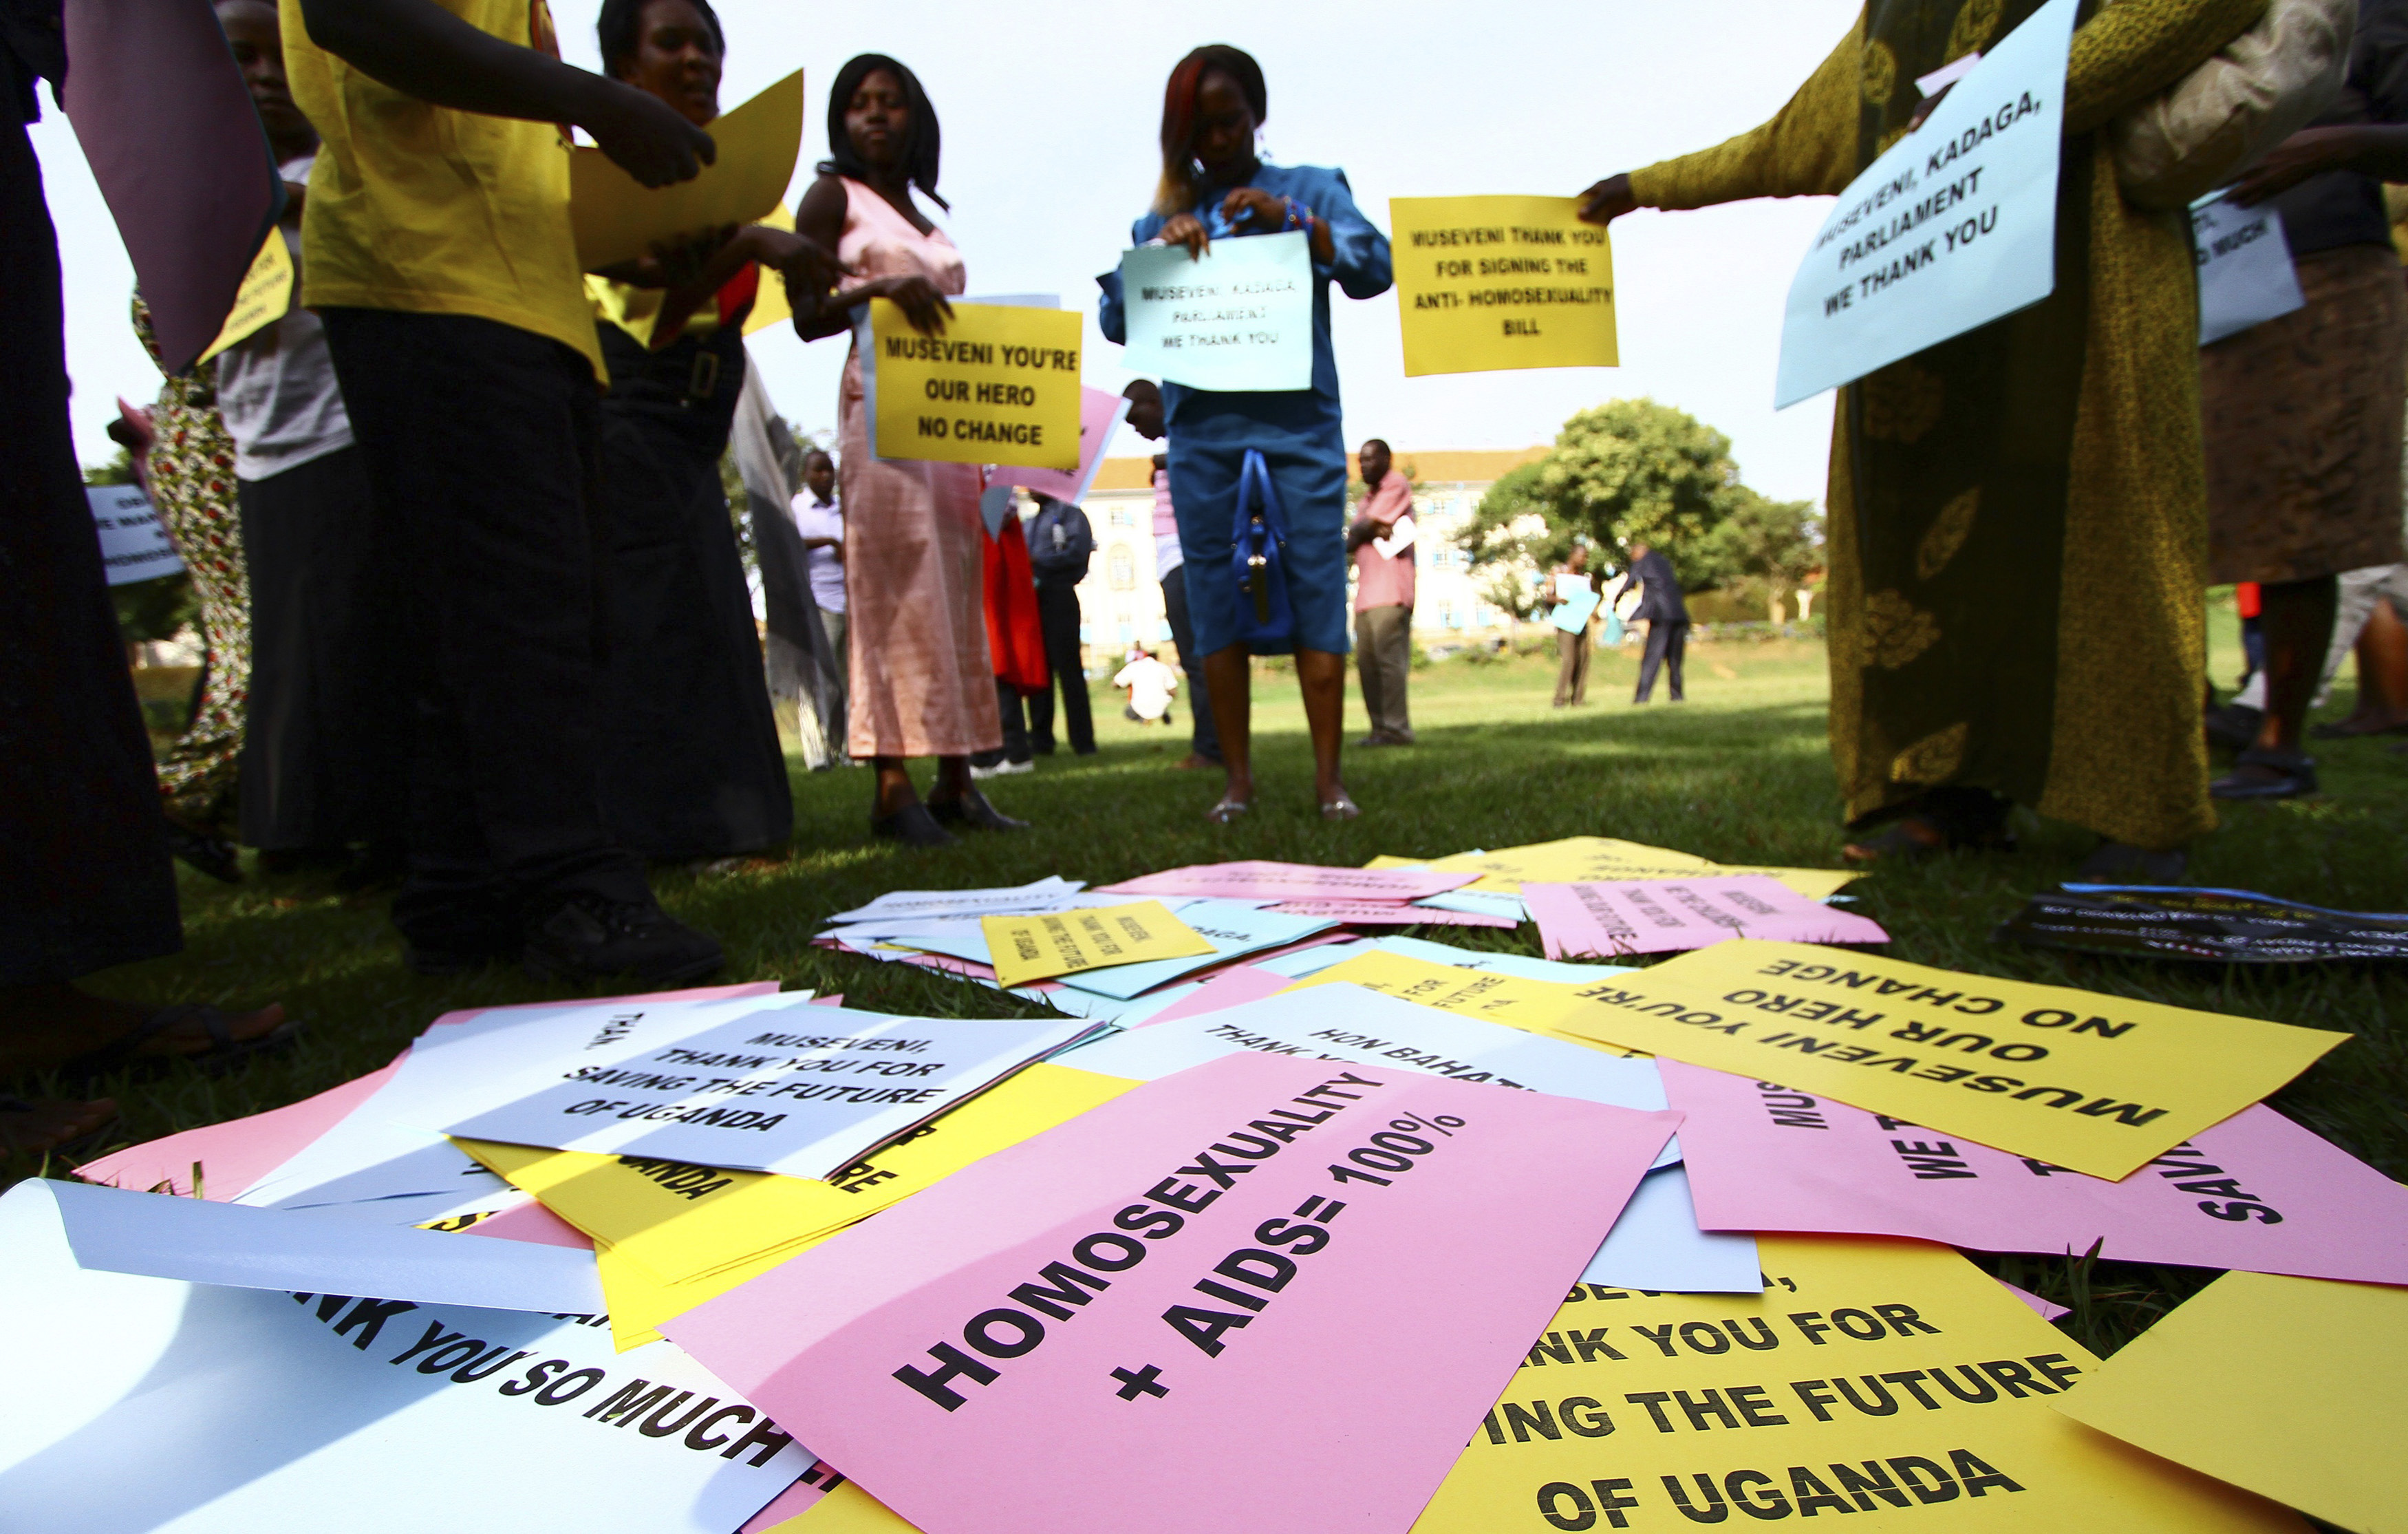 Supporters of the anti-gay law prepare for a procession backing the signing of the anti-gay bill into law, in Uganda's capital Kampala March 31, 2014.